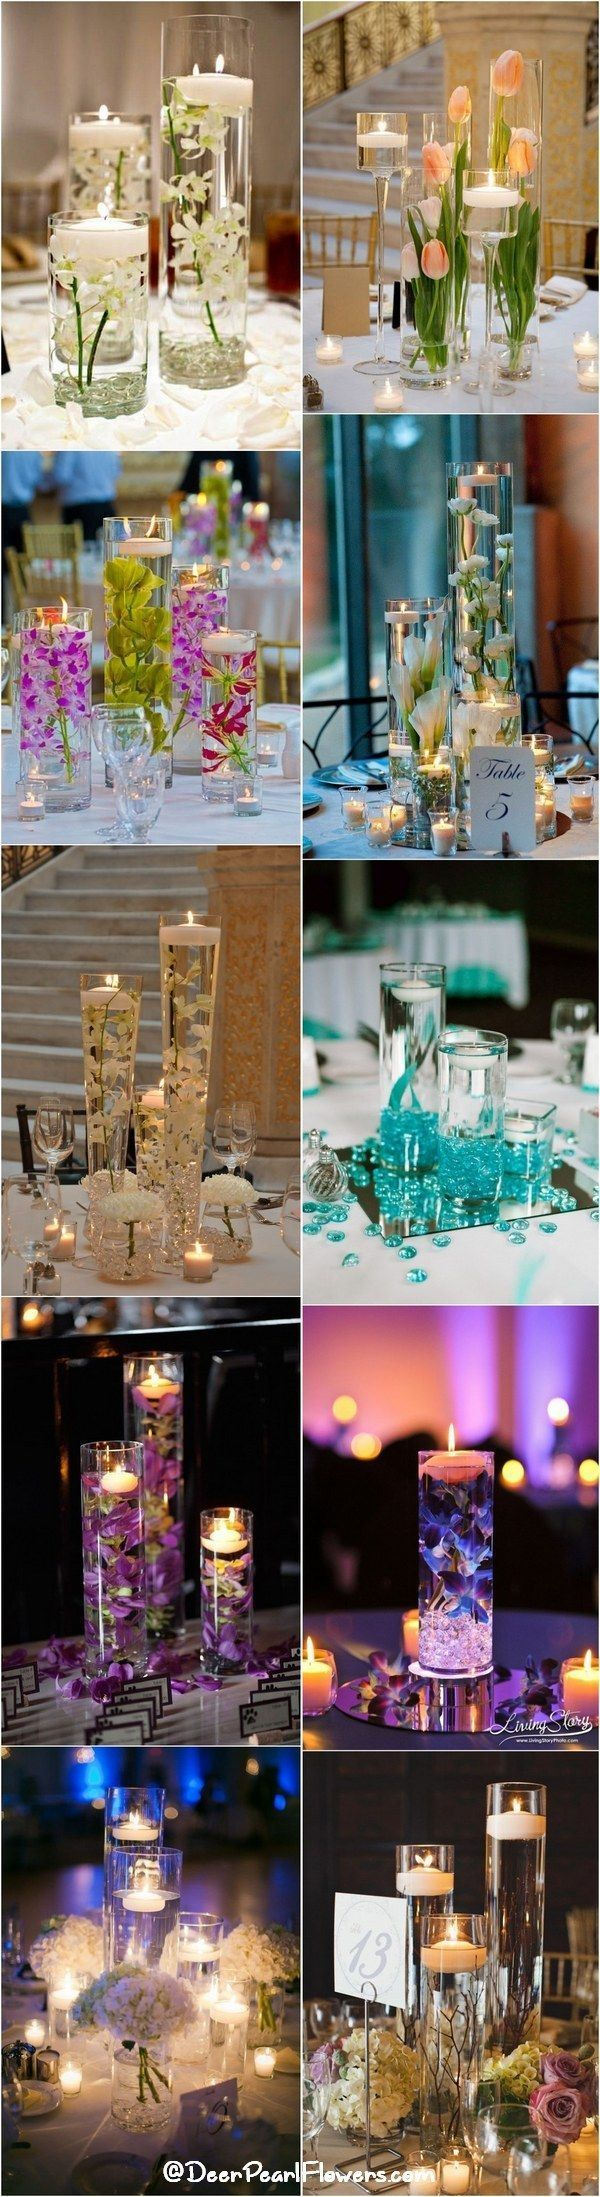 Romantic floating wedding centerpiece ideas.